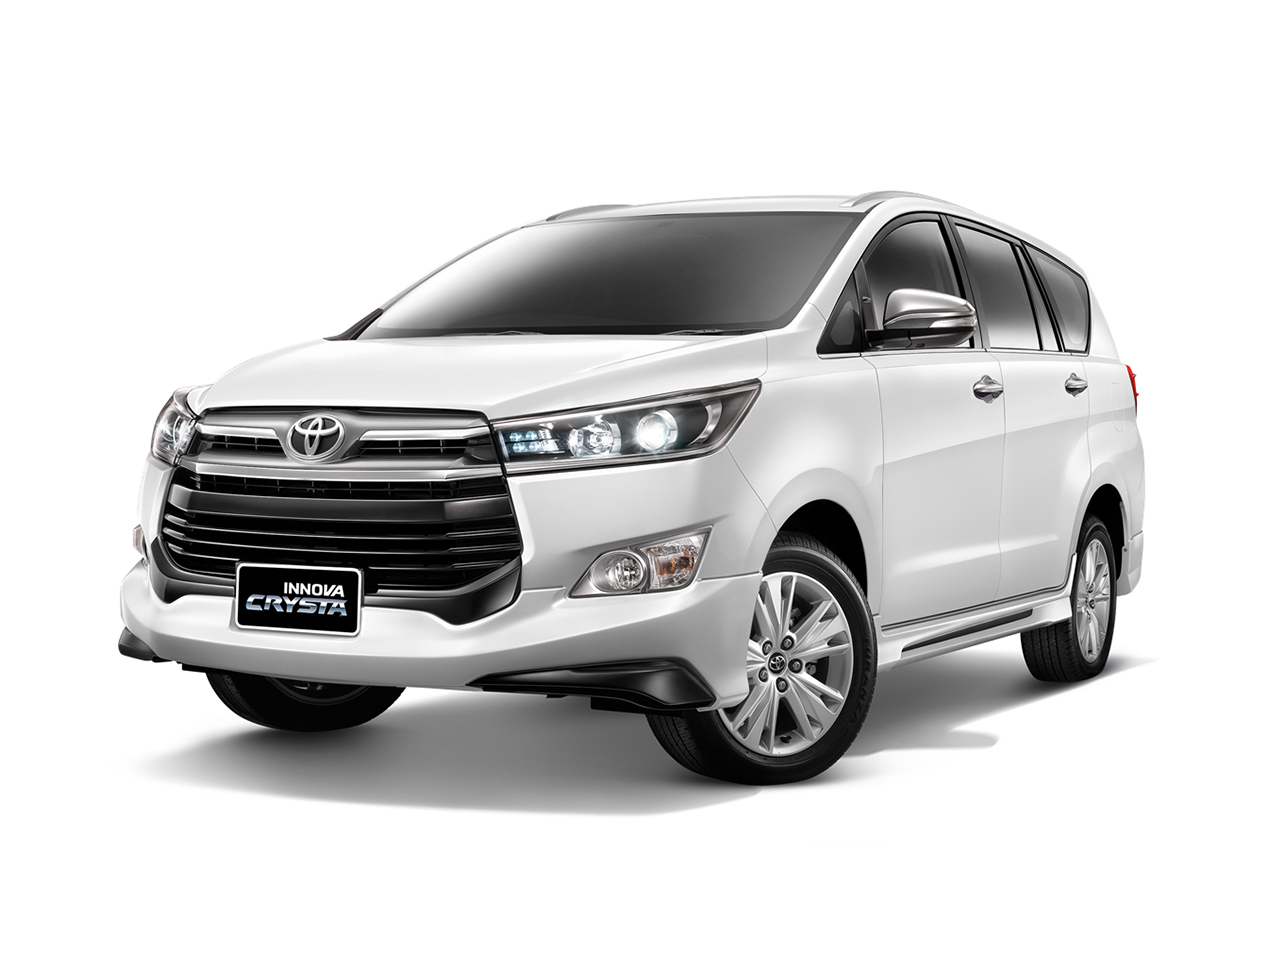 2017 Toyota Innova Prices in Bahrain, Gulf Specs & Reviews ...